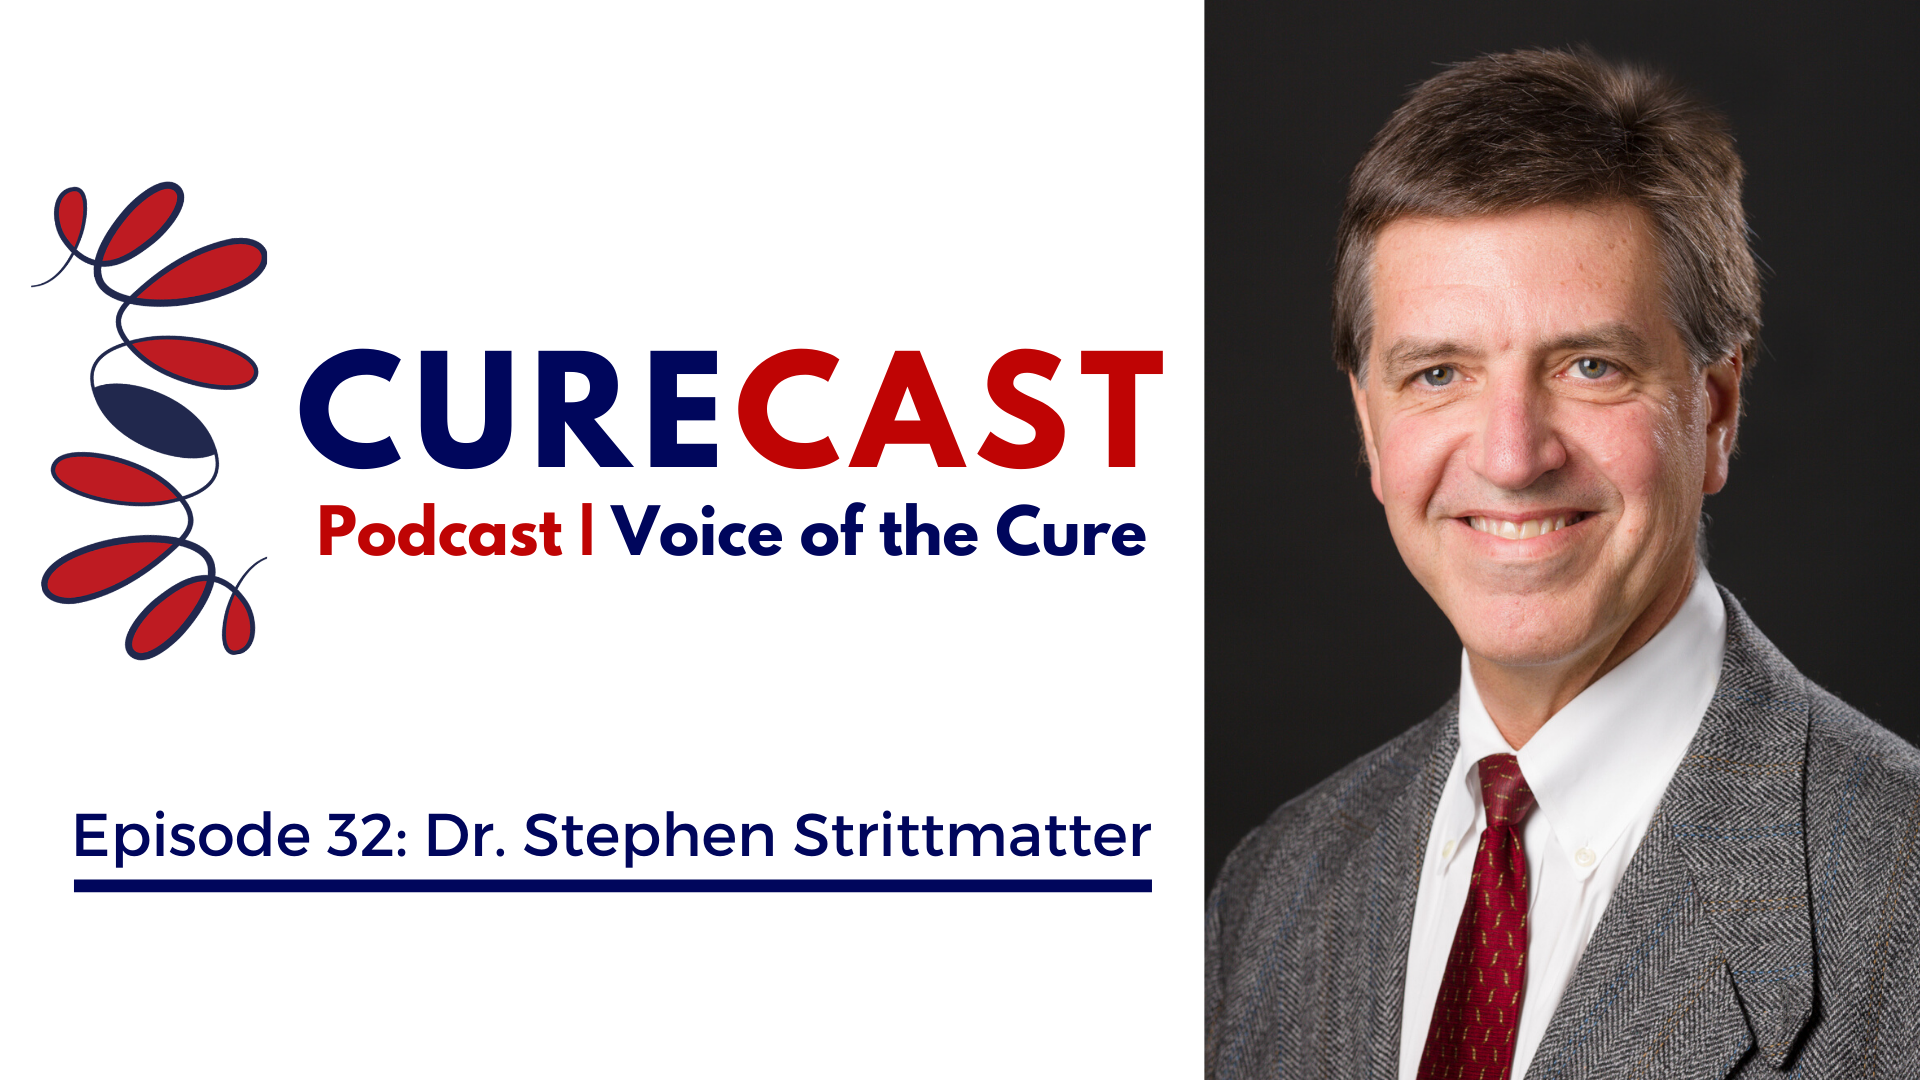 CureCast Episode 32: Interview with Dr. Stephen Strittmatter about ReNetX